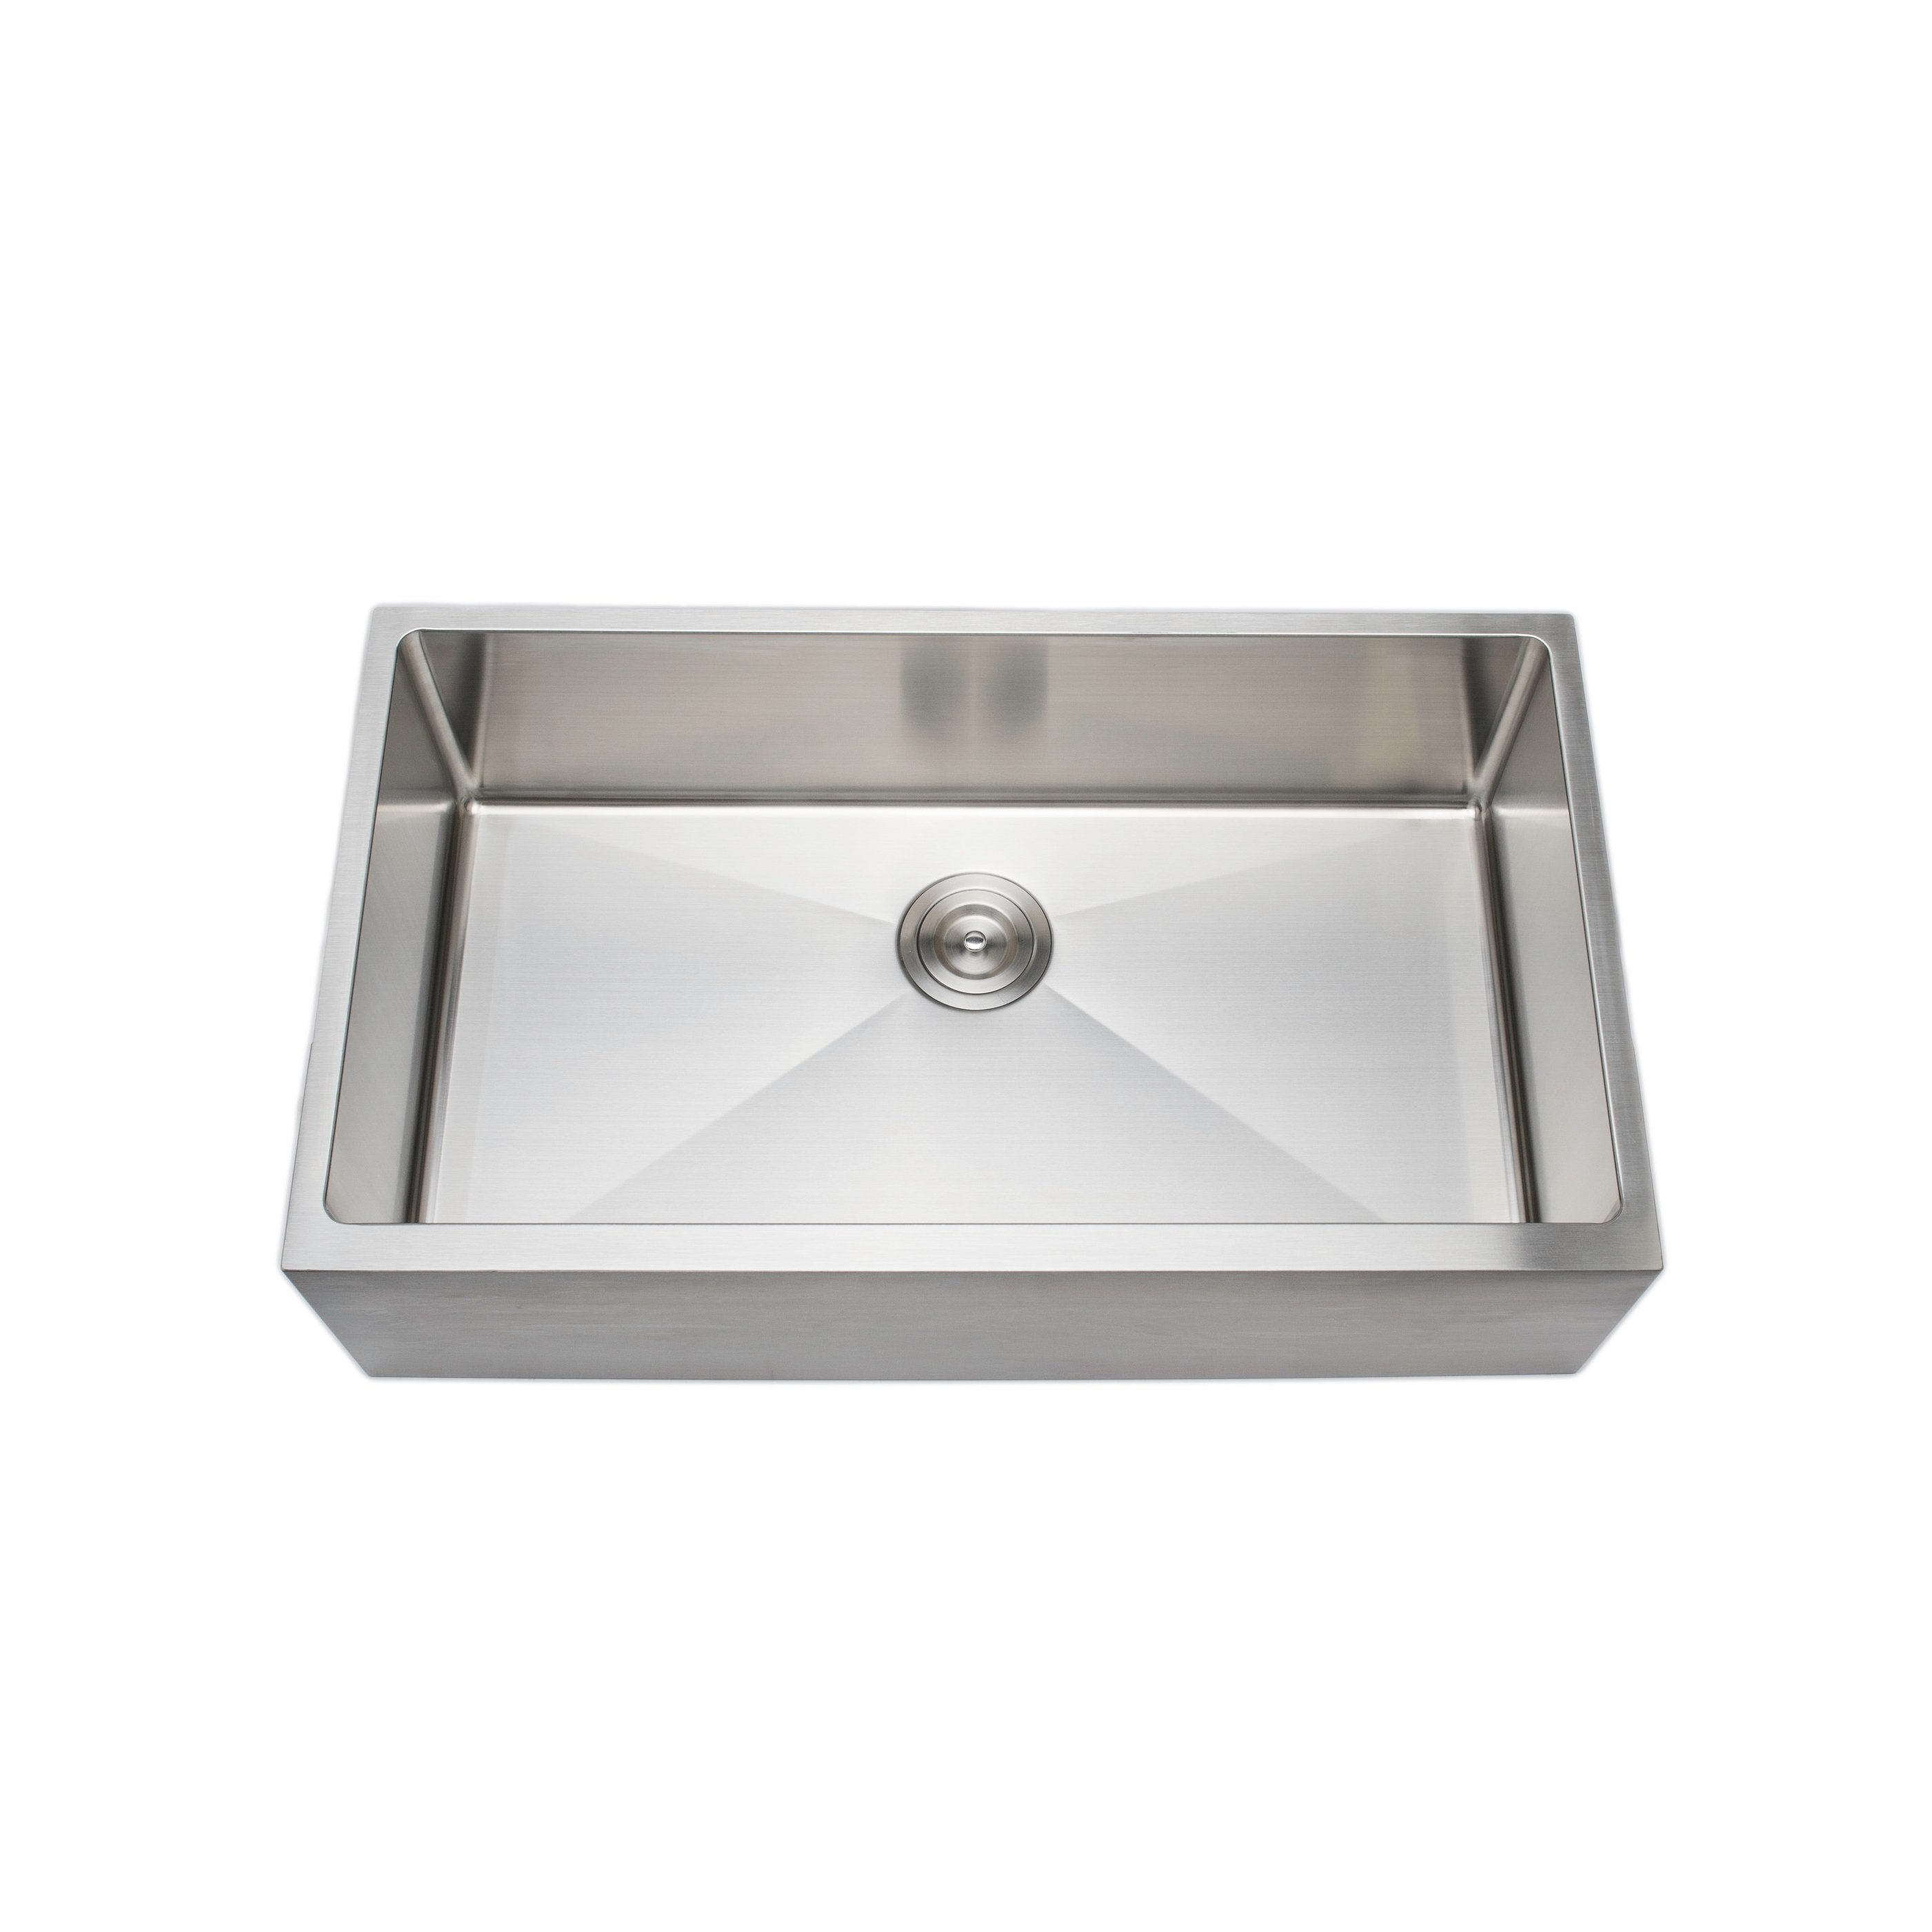 Wells Sinkware 33 Inch 16 Gauge Undermount Farmhouse Apron Front Single Bowl Stainless Steel Kitchen Sink Single Bowl Kitchen Sink Sink Single Bowl Sink